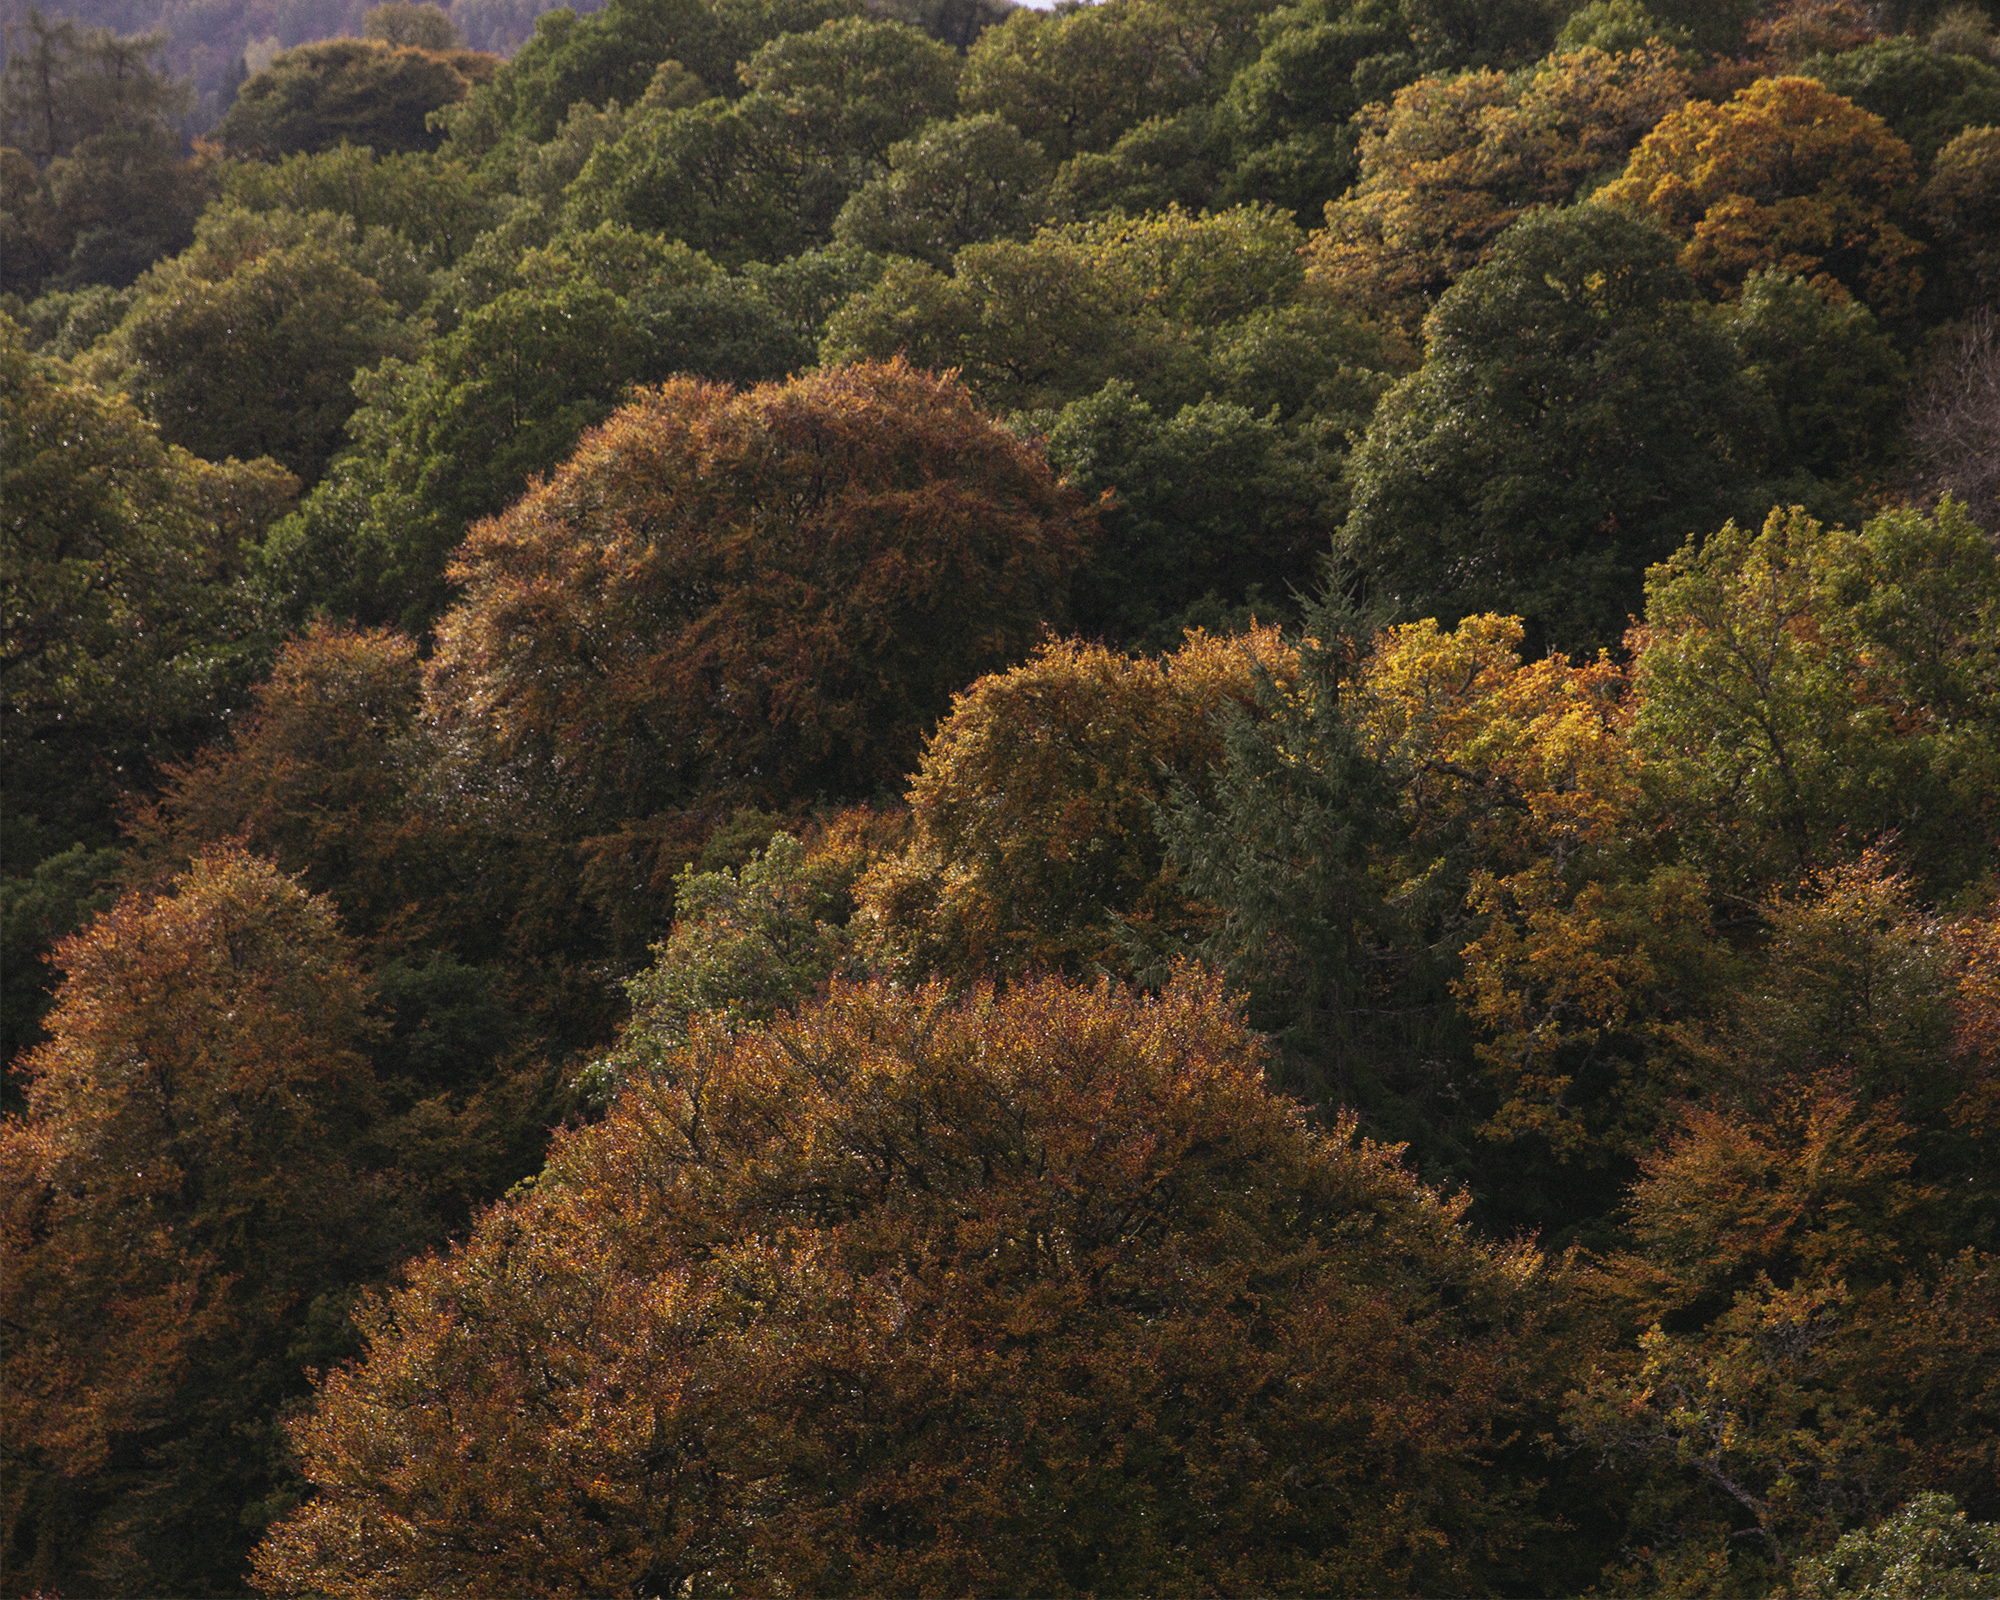 Autumnal trees in shades of orange, yellow, brown and green.